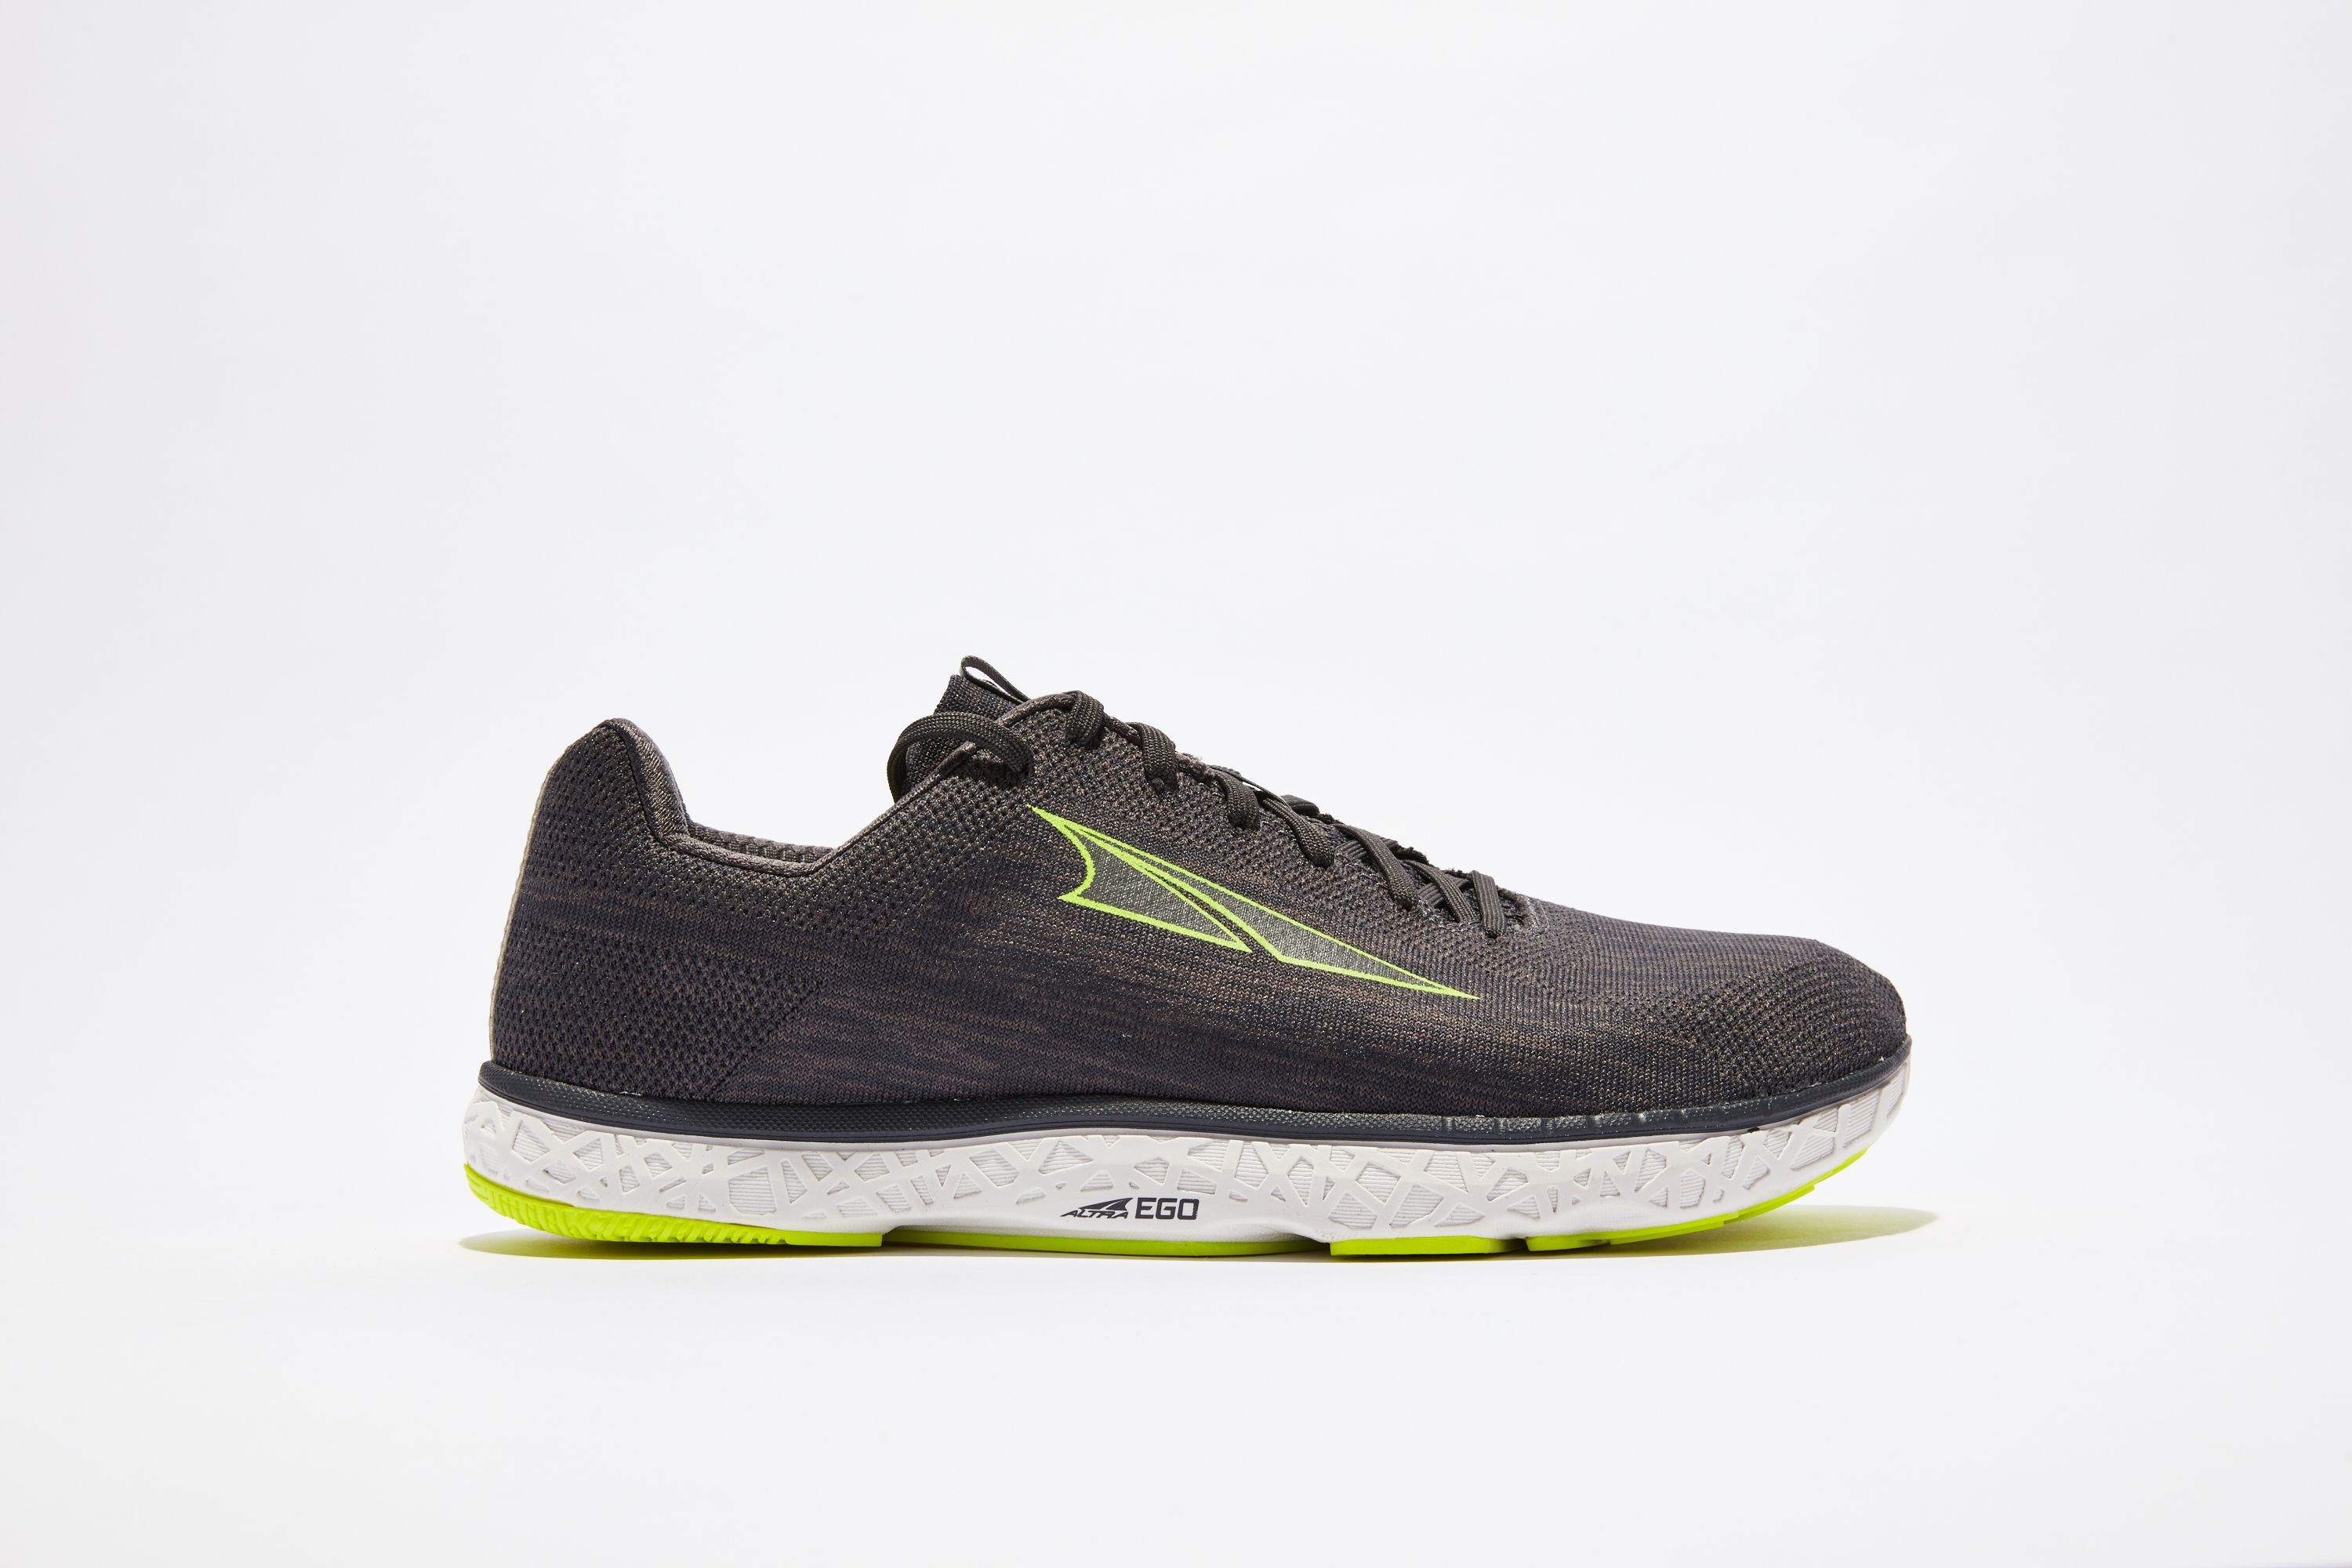 new concept 5dc82 30dee Altra Running Shoes   Best Altra Shoes 2019